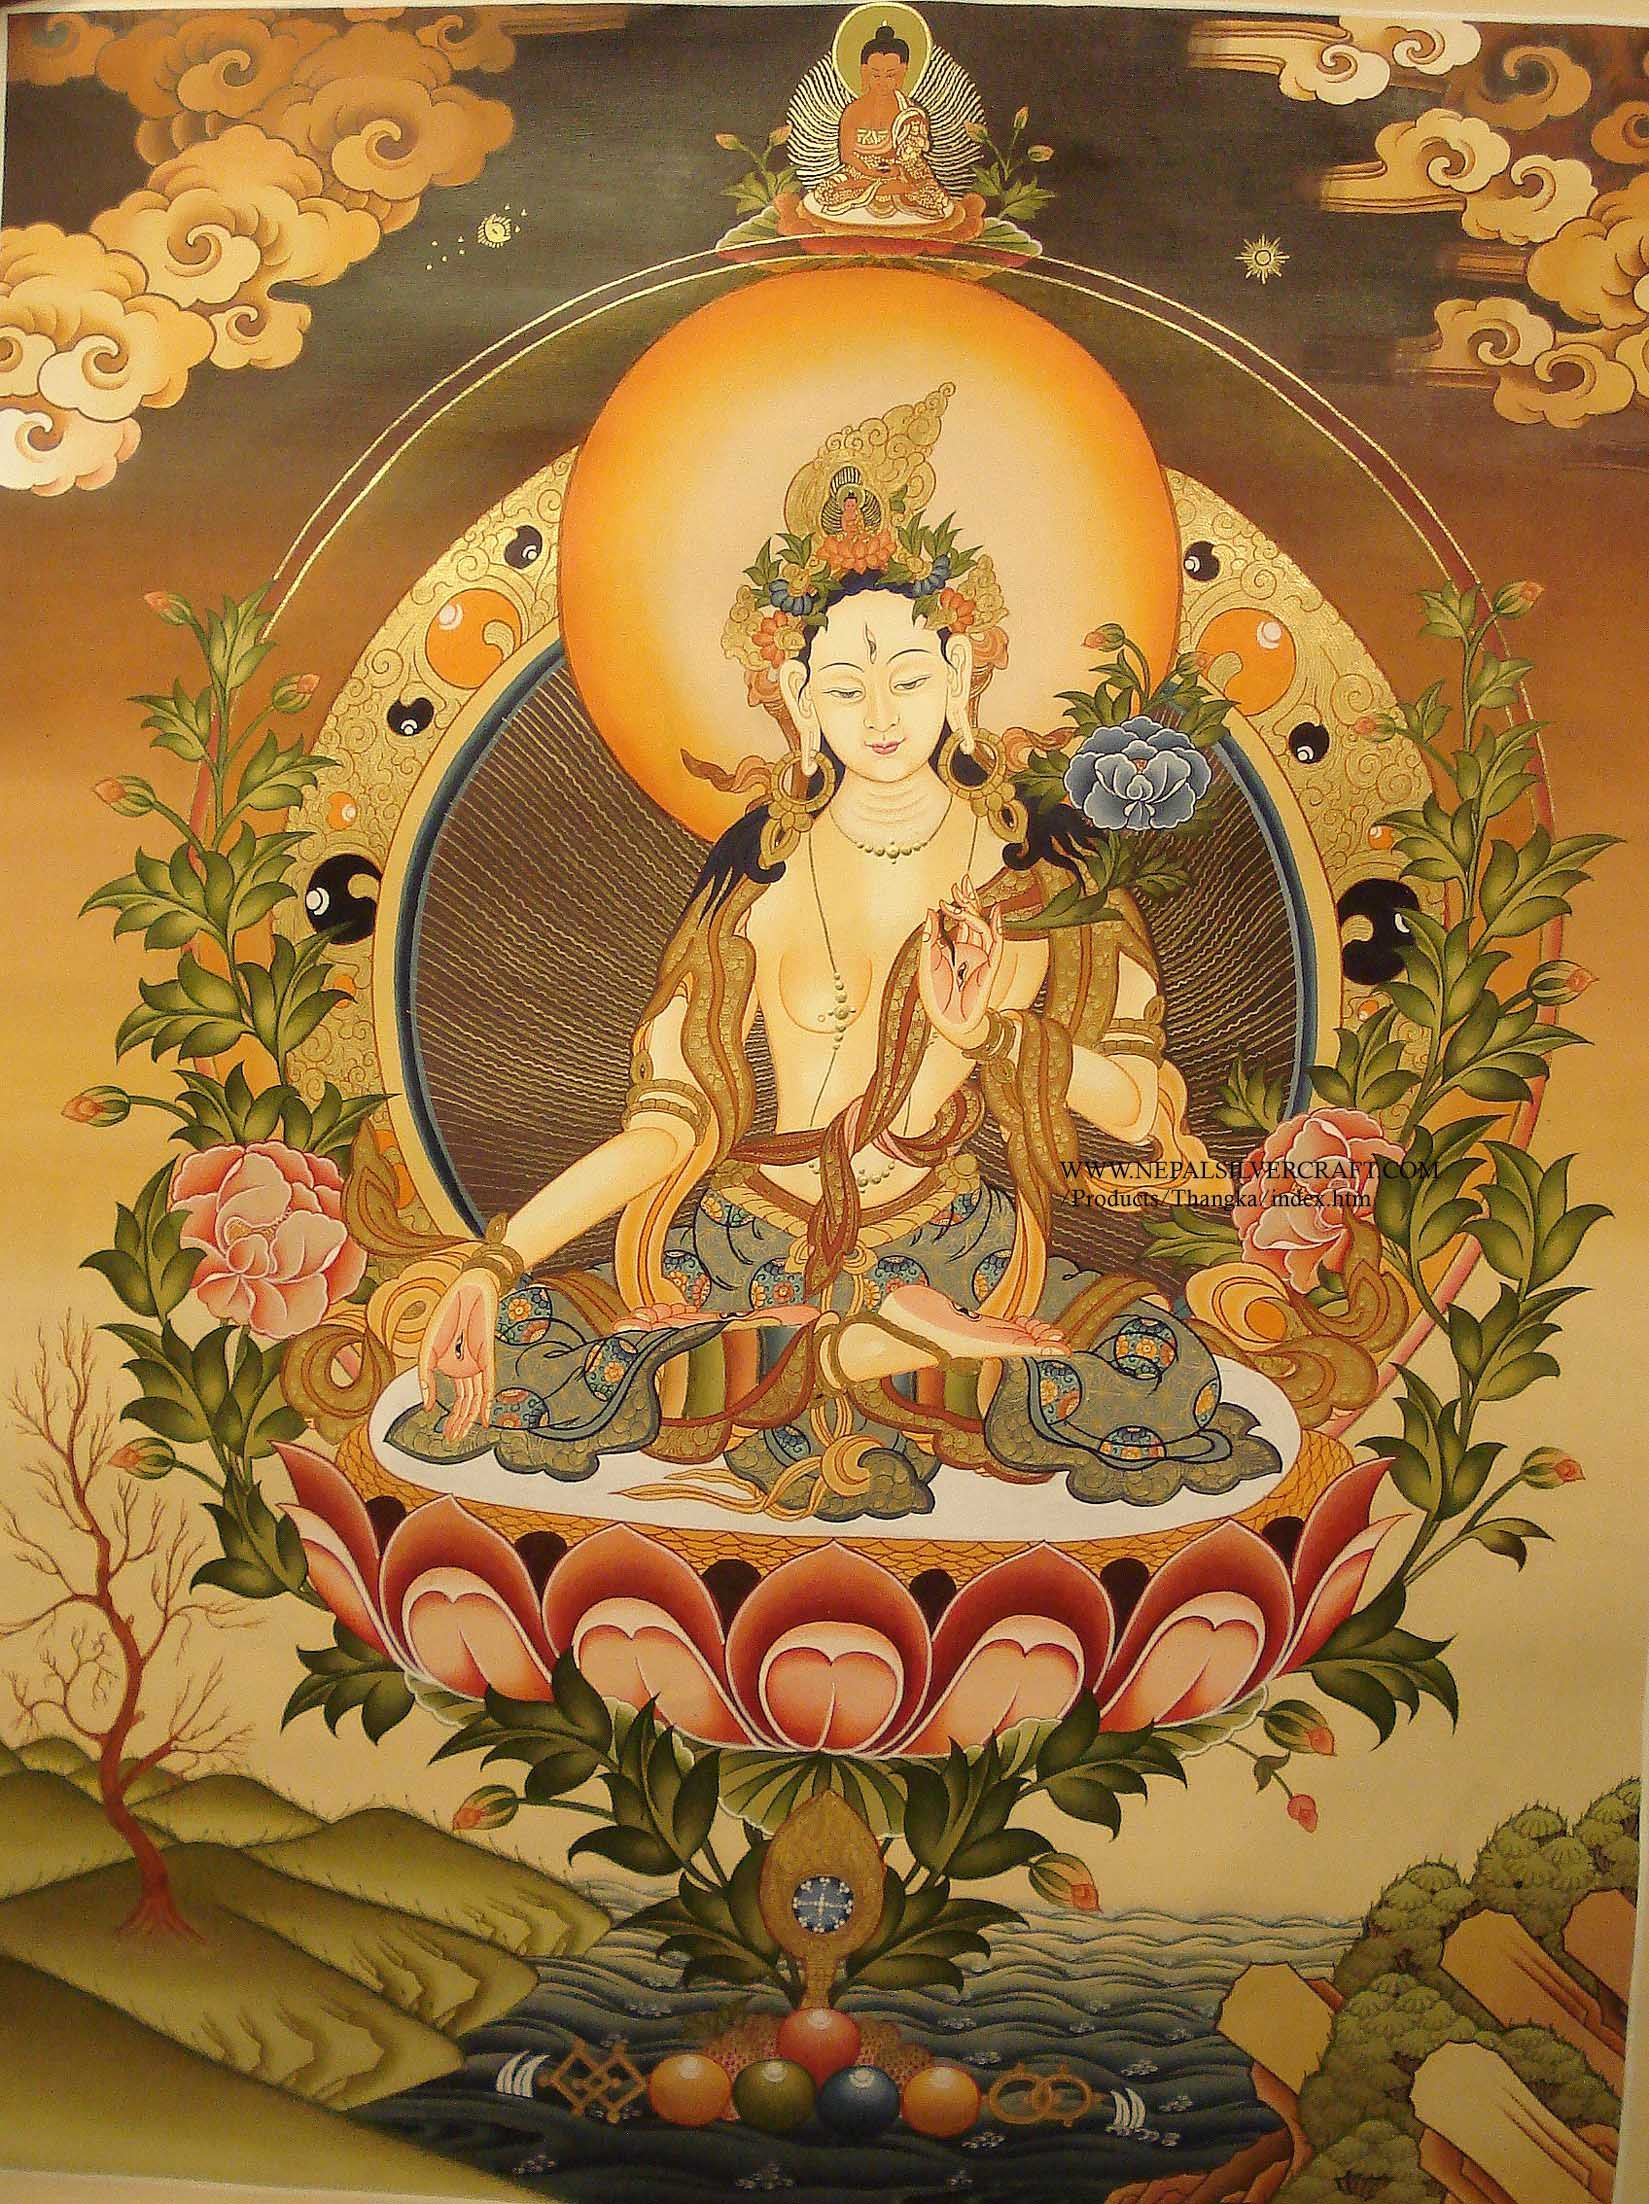 ABOUT WHITE TARA THANGKA PAINTING